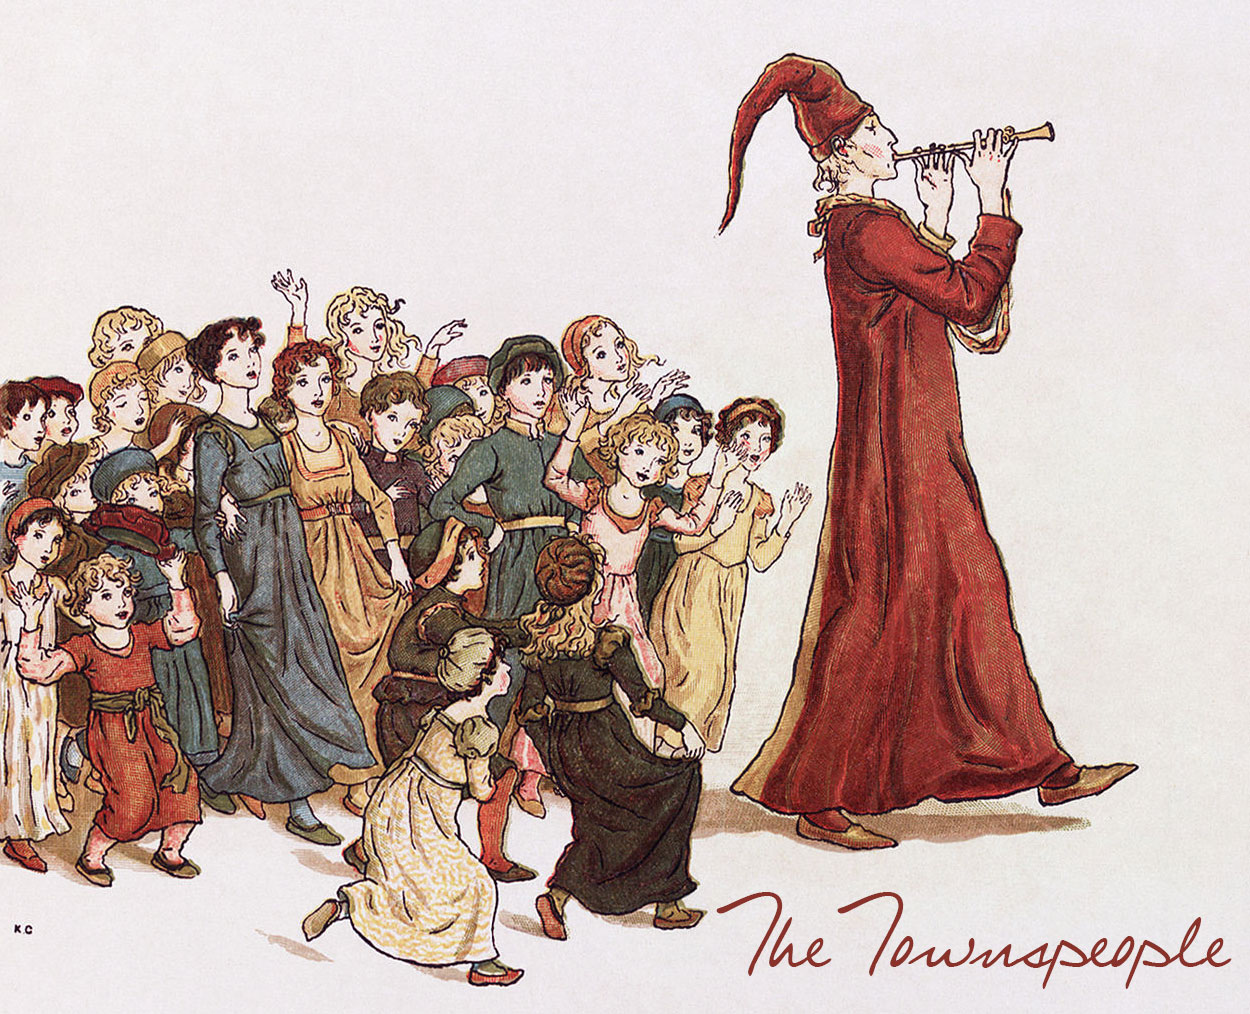 Illustration by Kate Greenaway, from The Pied Piper of Hamelin by Robert Browning (1910)